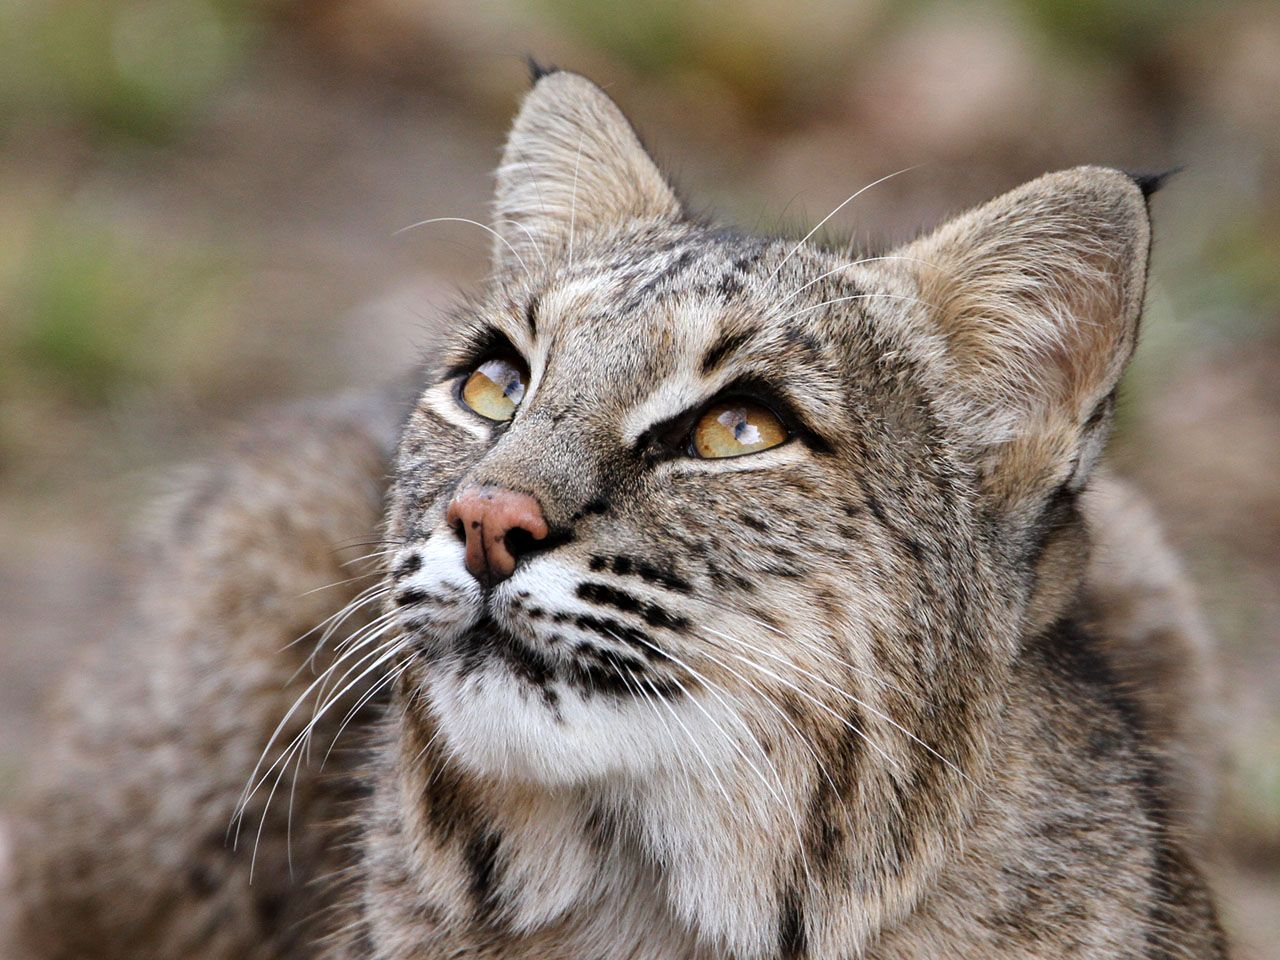 Bobcat Of the 36 species of wild cats 22 are small cats